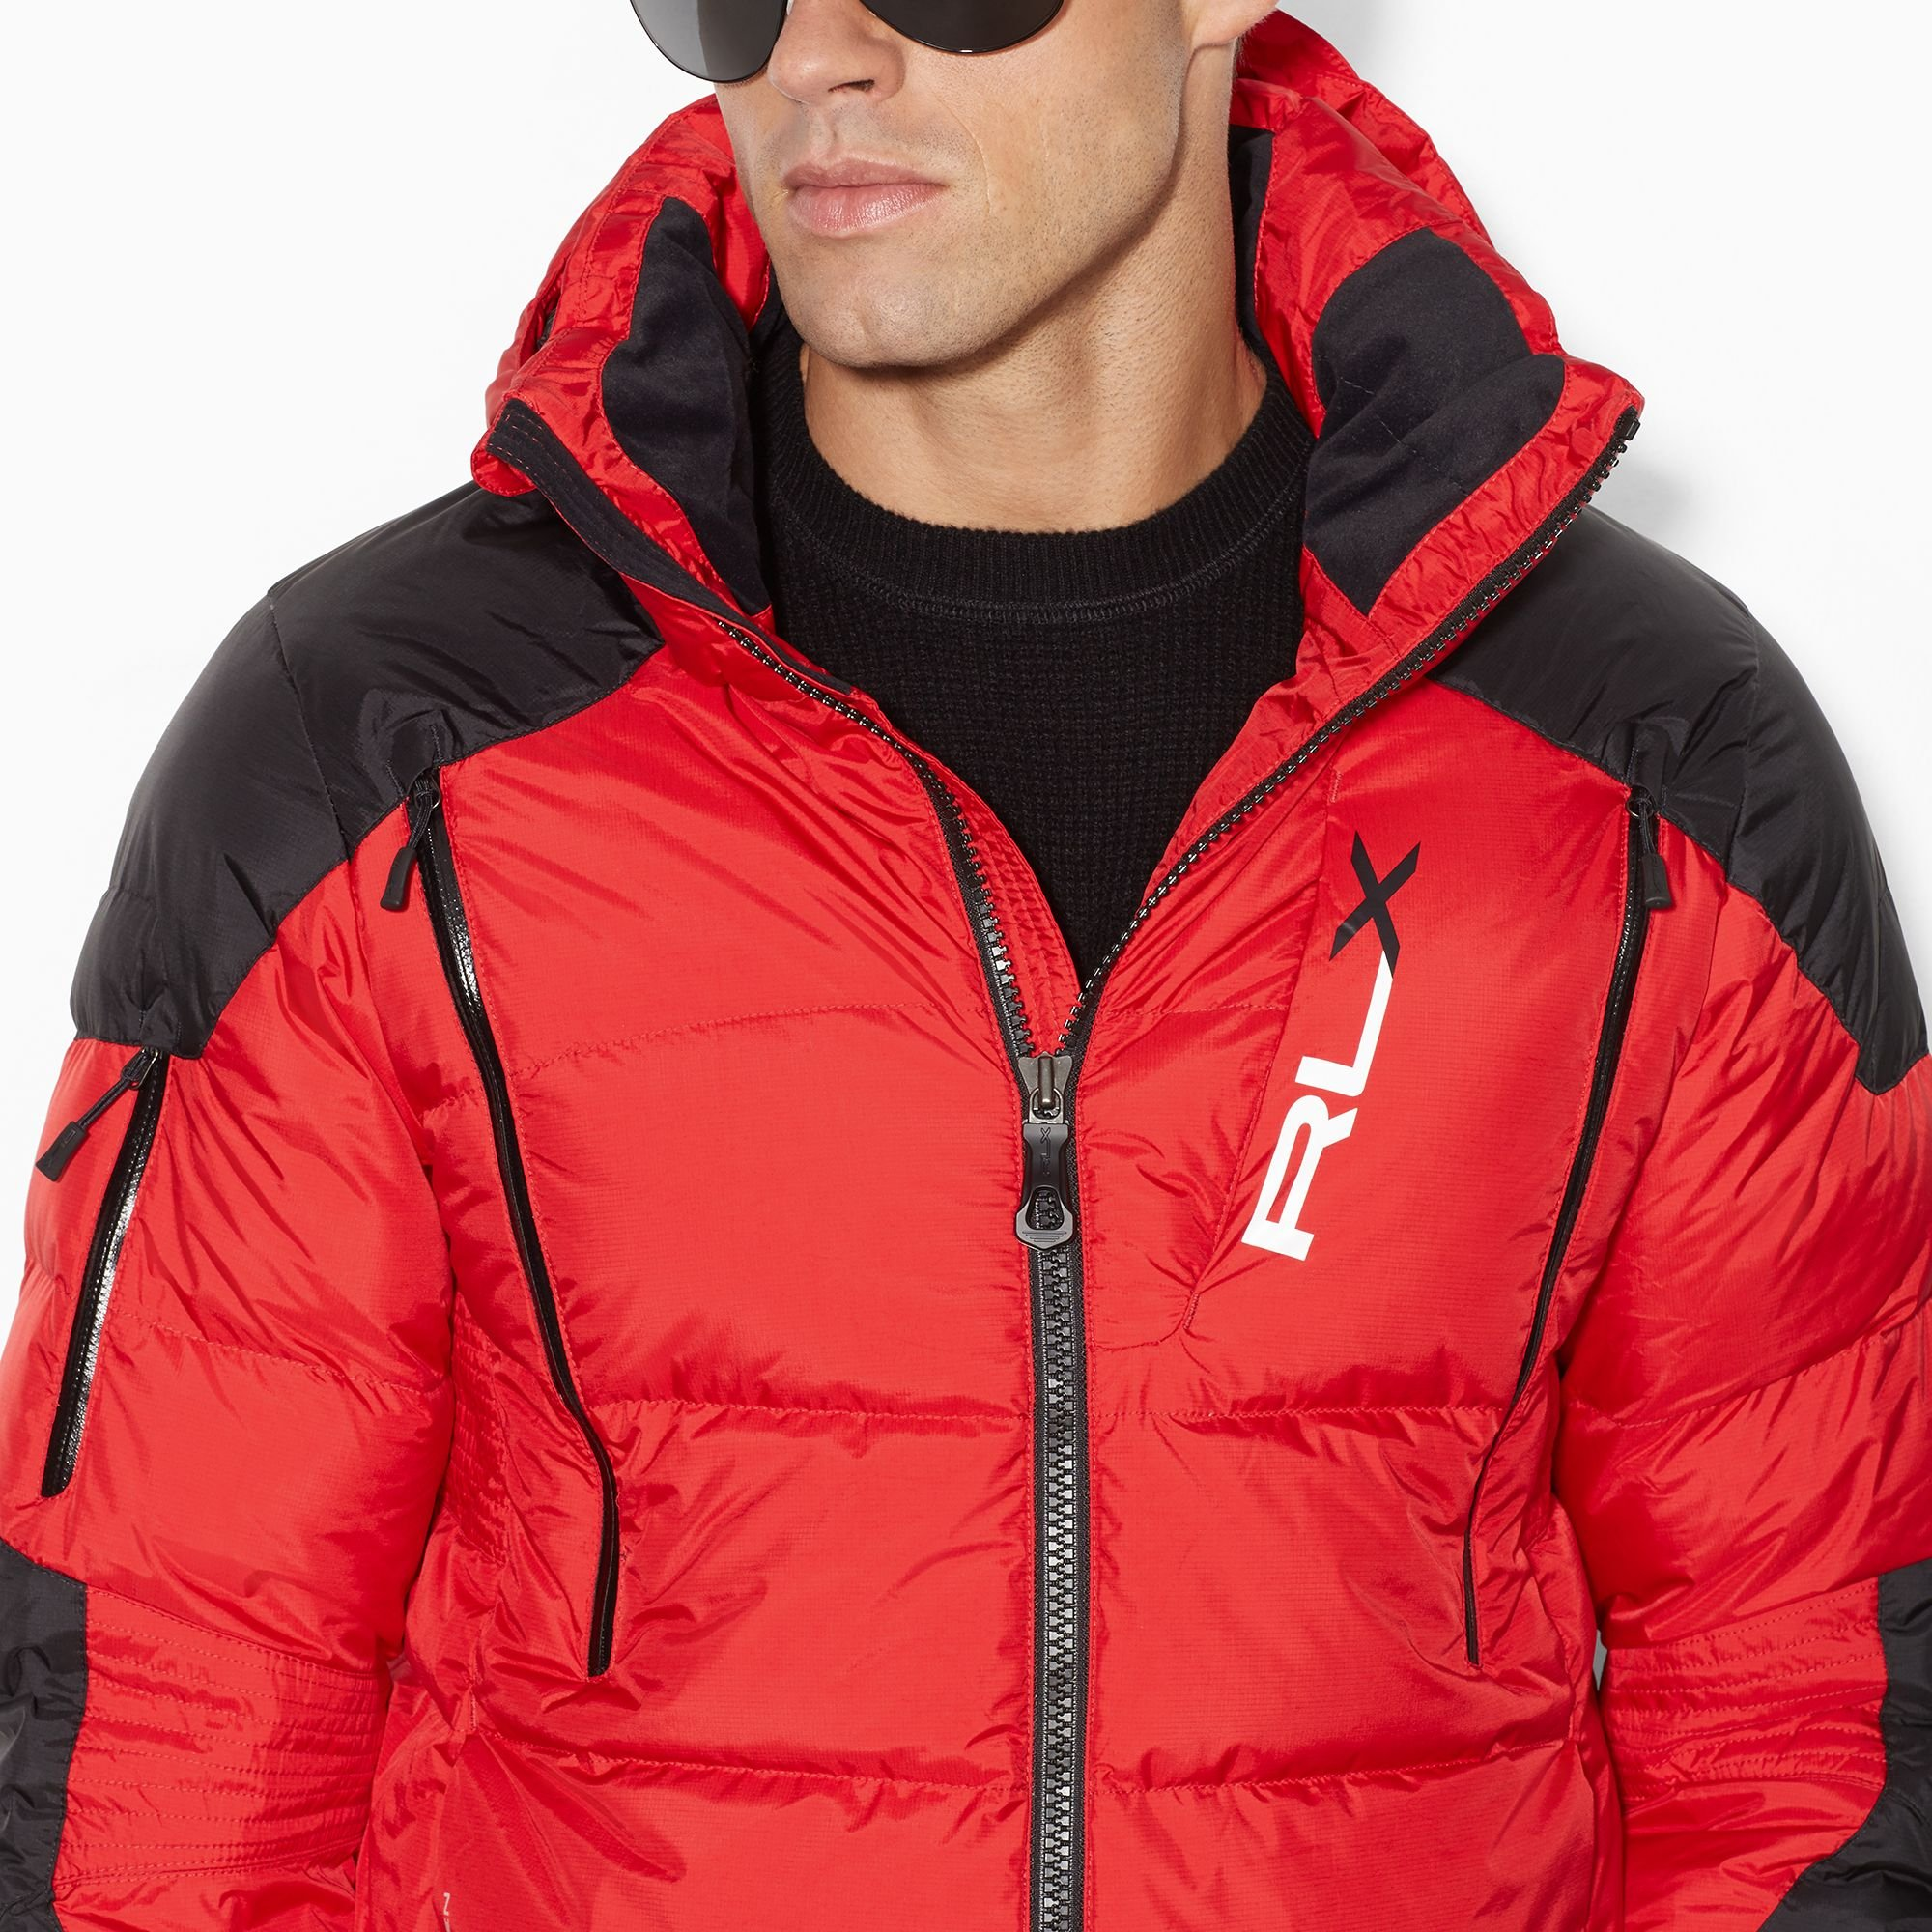 Rlx Ralph Lauren Quilted Down Hooded Jacket In Red For Men